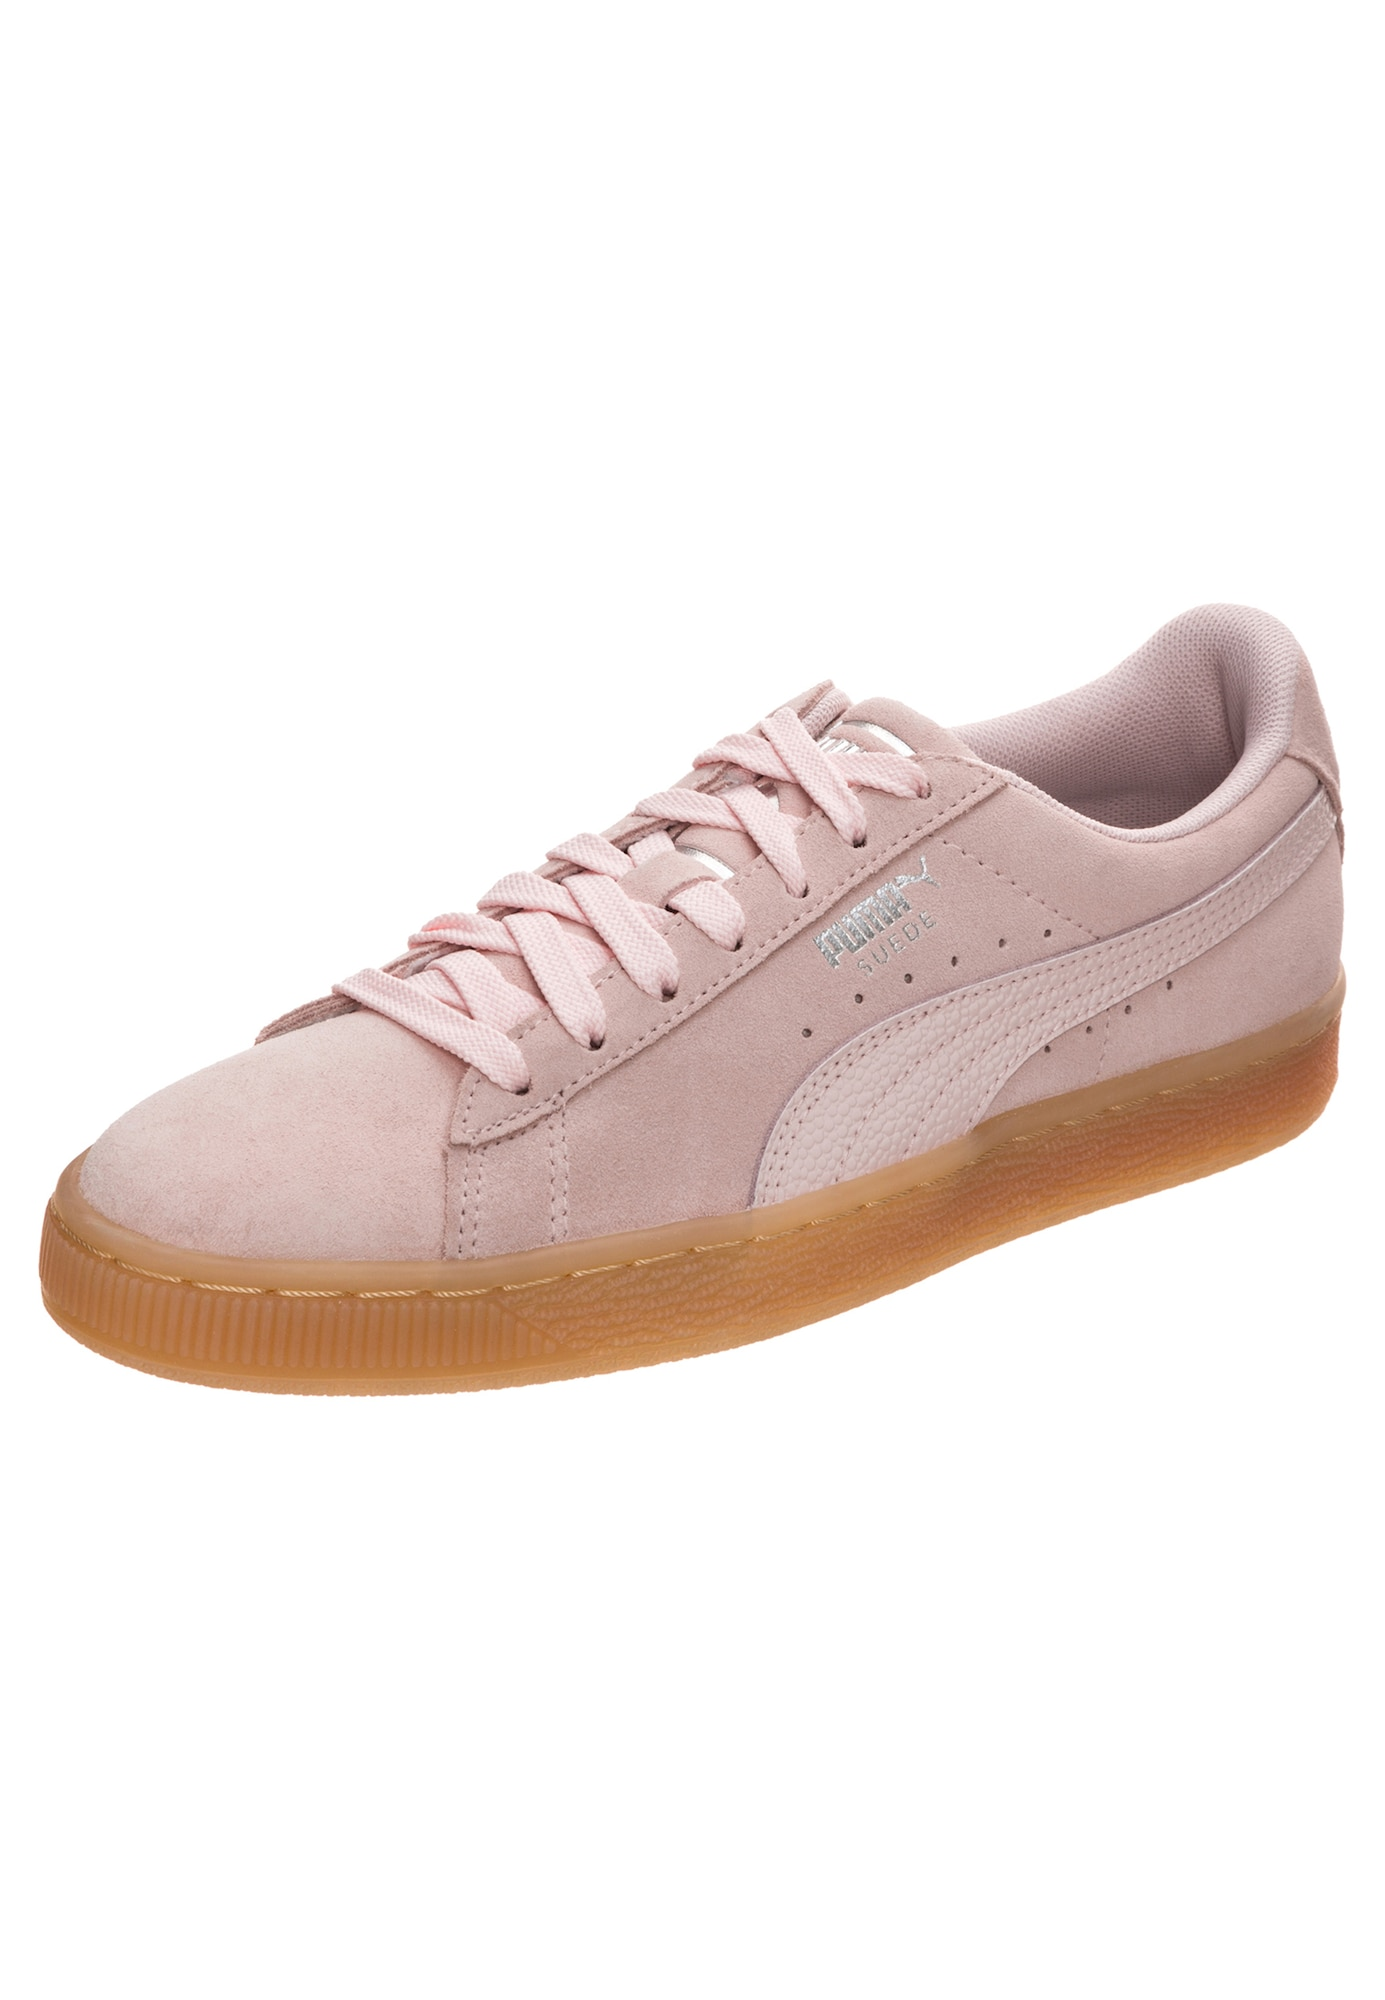 PUMA, Dames Sneakers laag 'Suede Classic Bubble', rosa